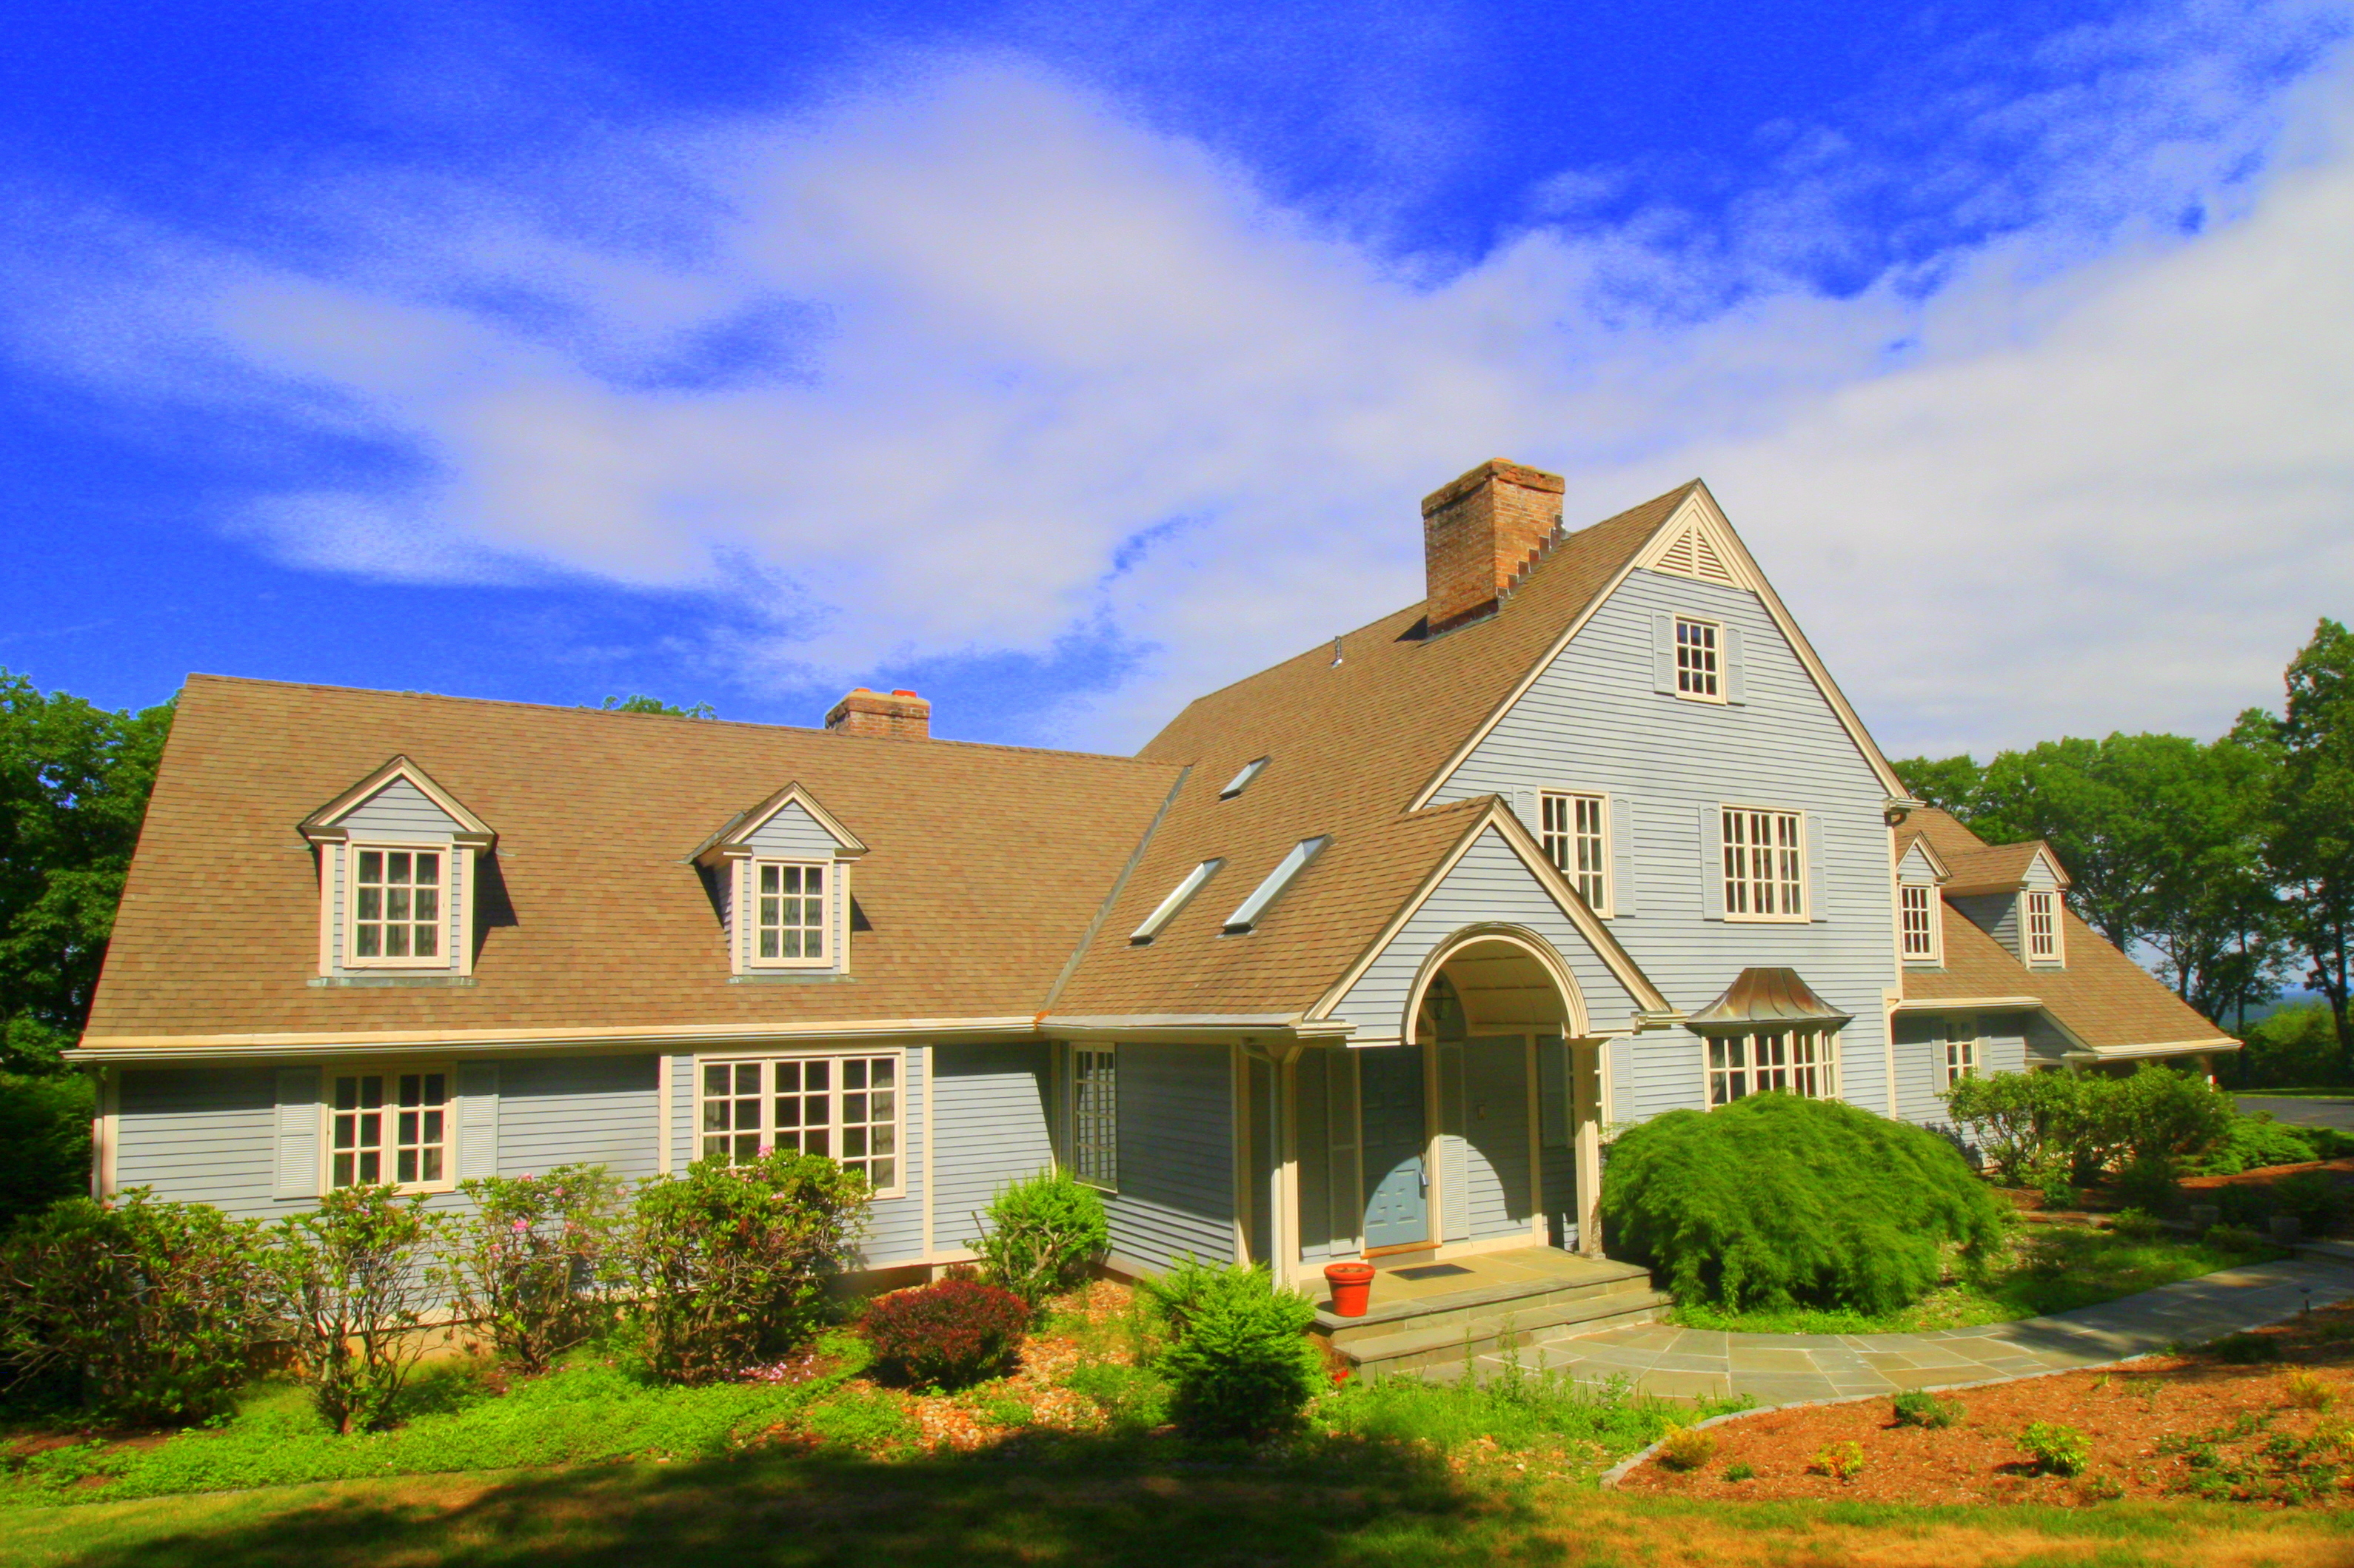 109 Long Hill Drive, Somers, Connecticut 06071